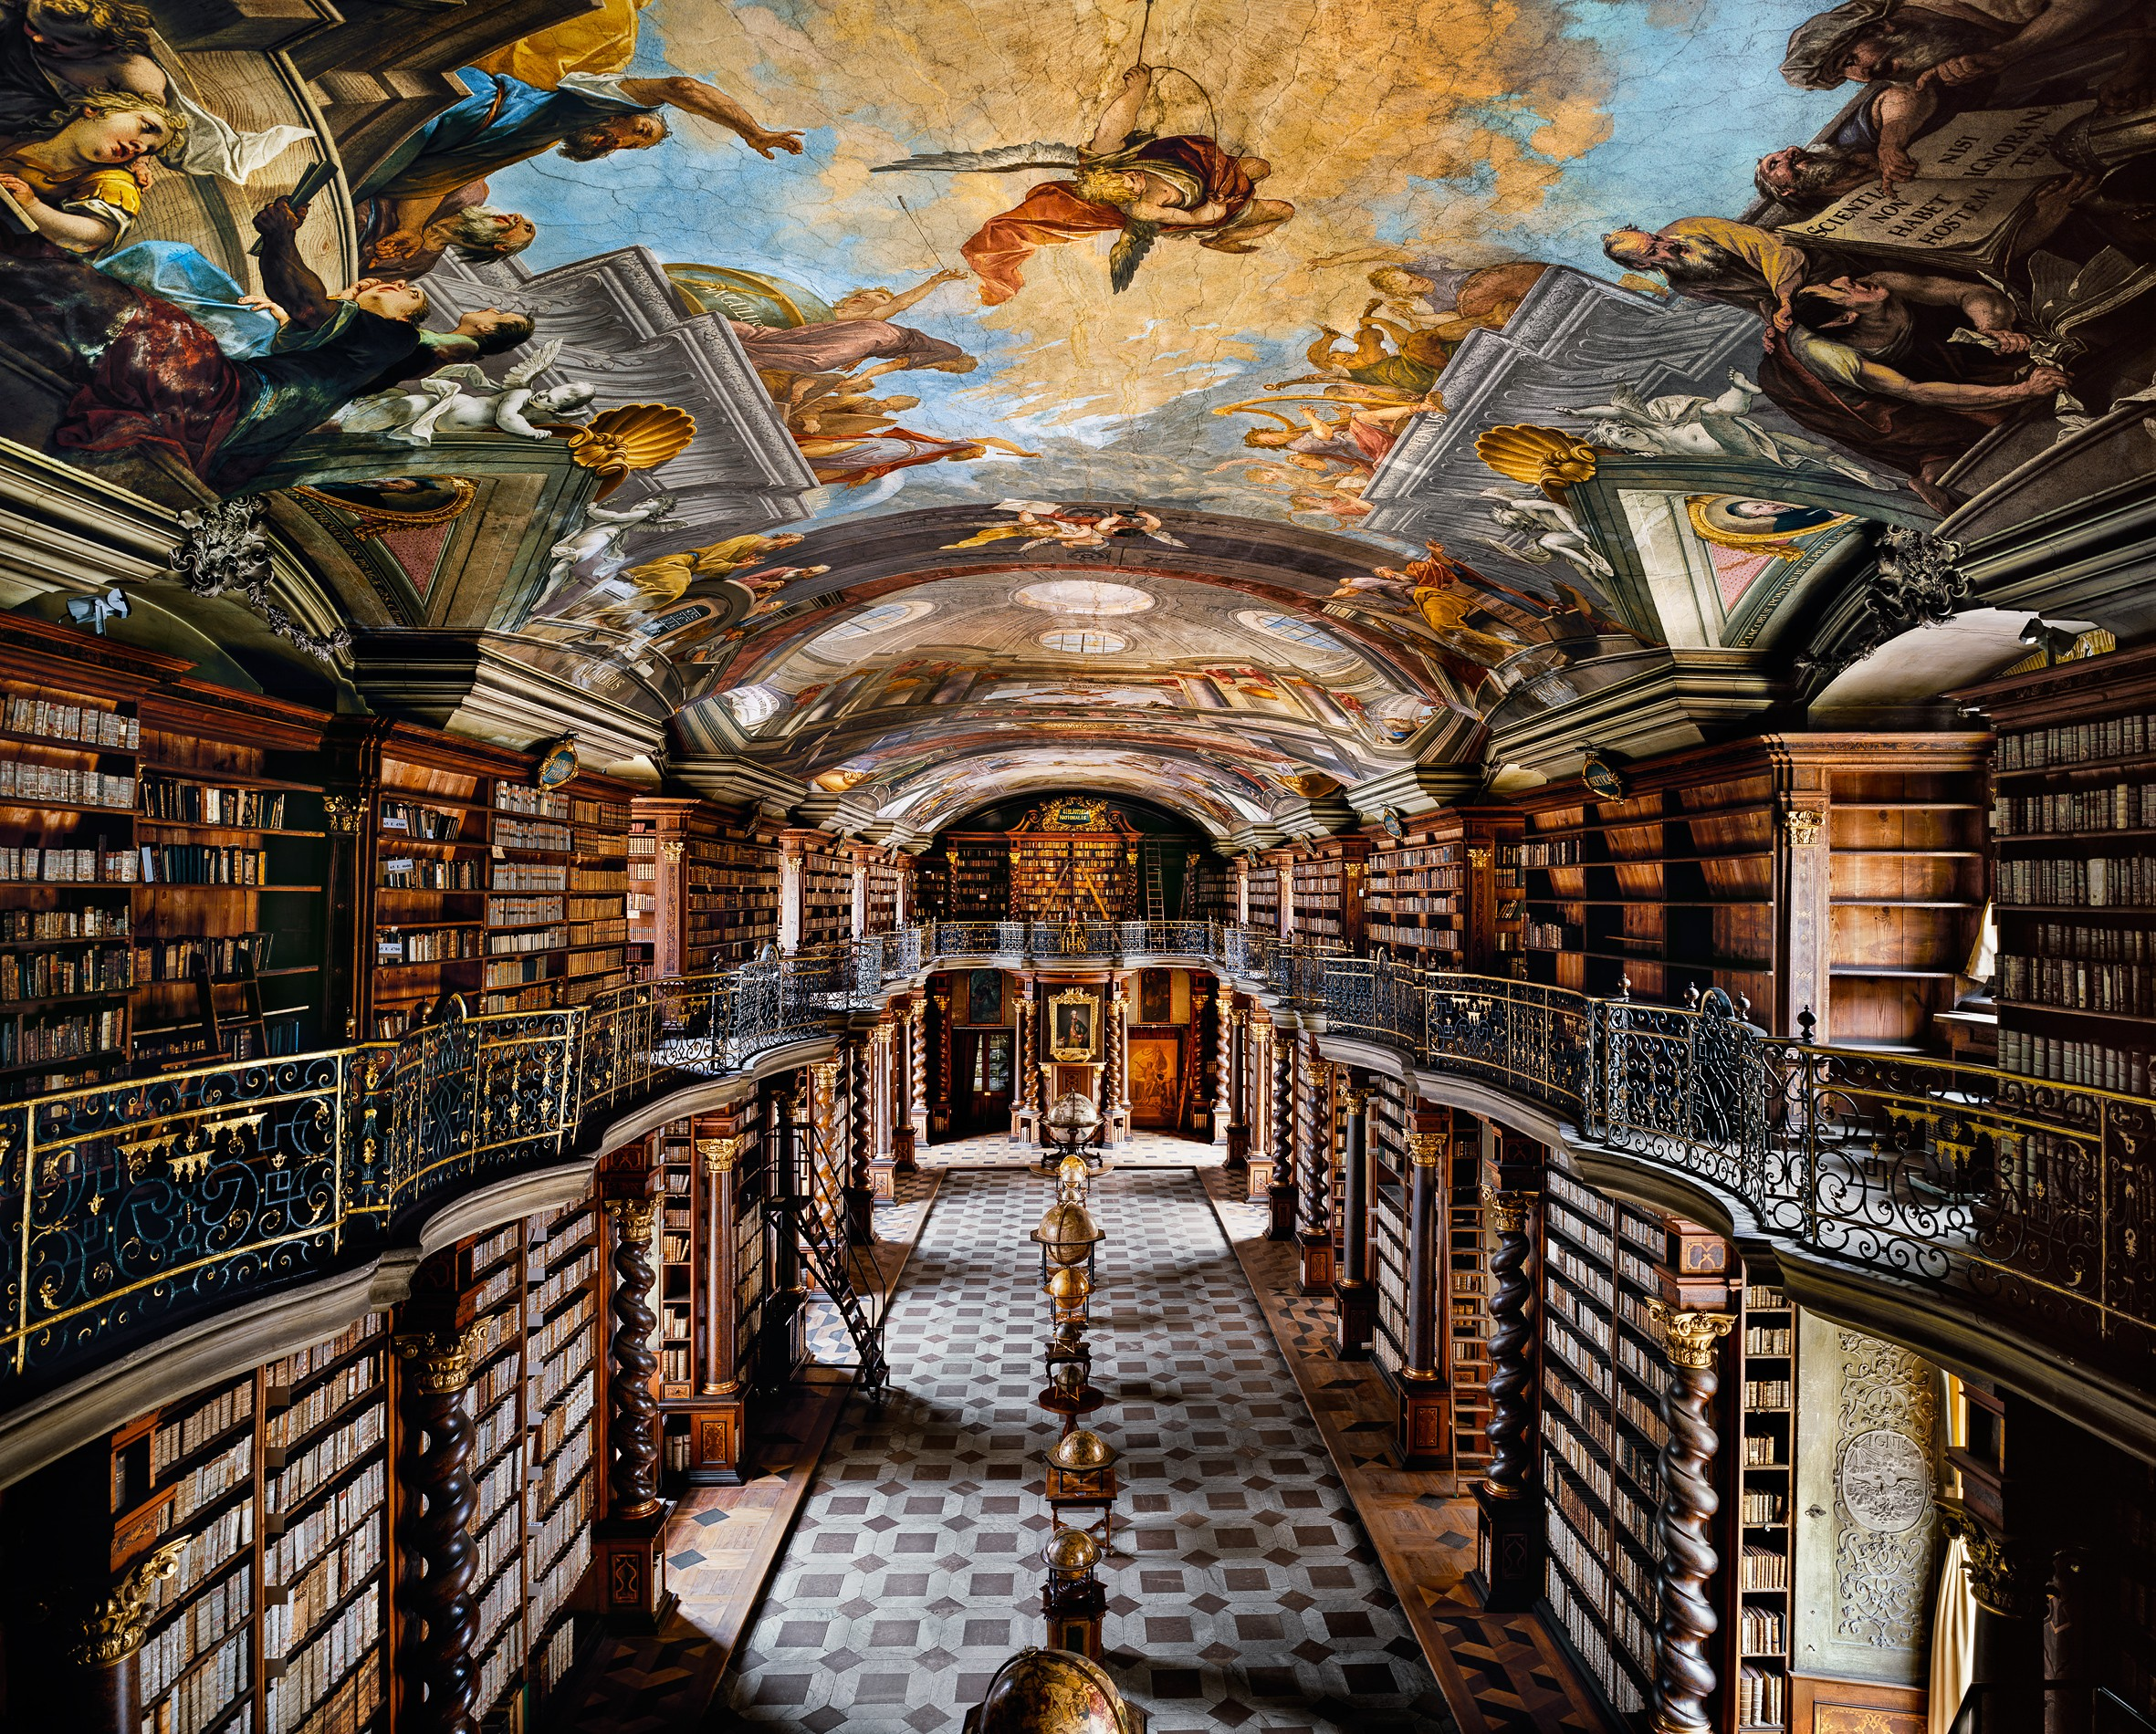 ahmet ertug the national library clementinum prague 2009 diasec 180x224 cm courtesy of elipsis gallery london istanbul